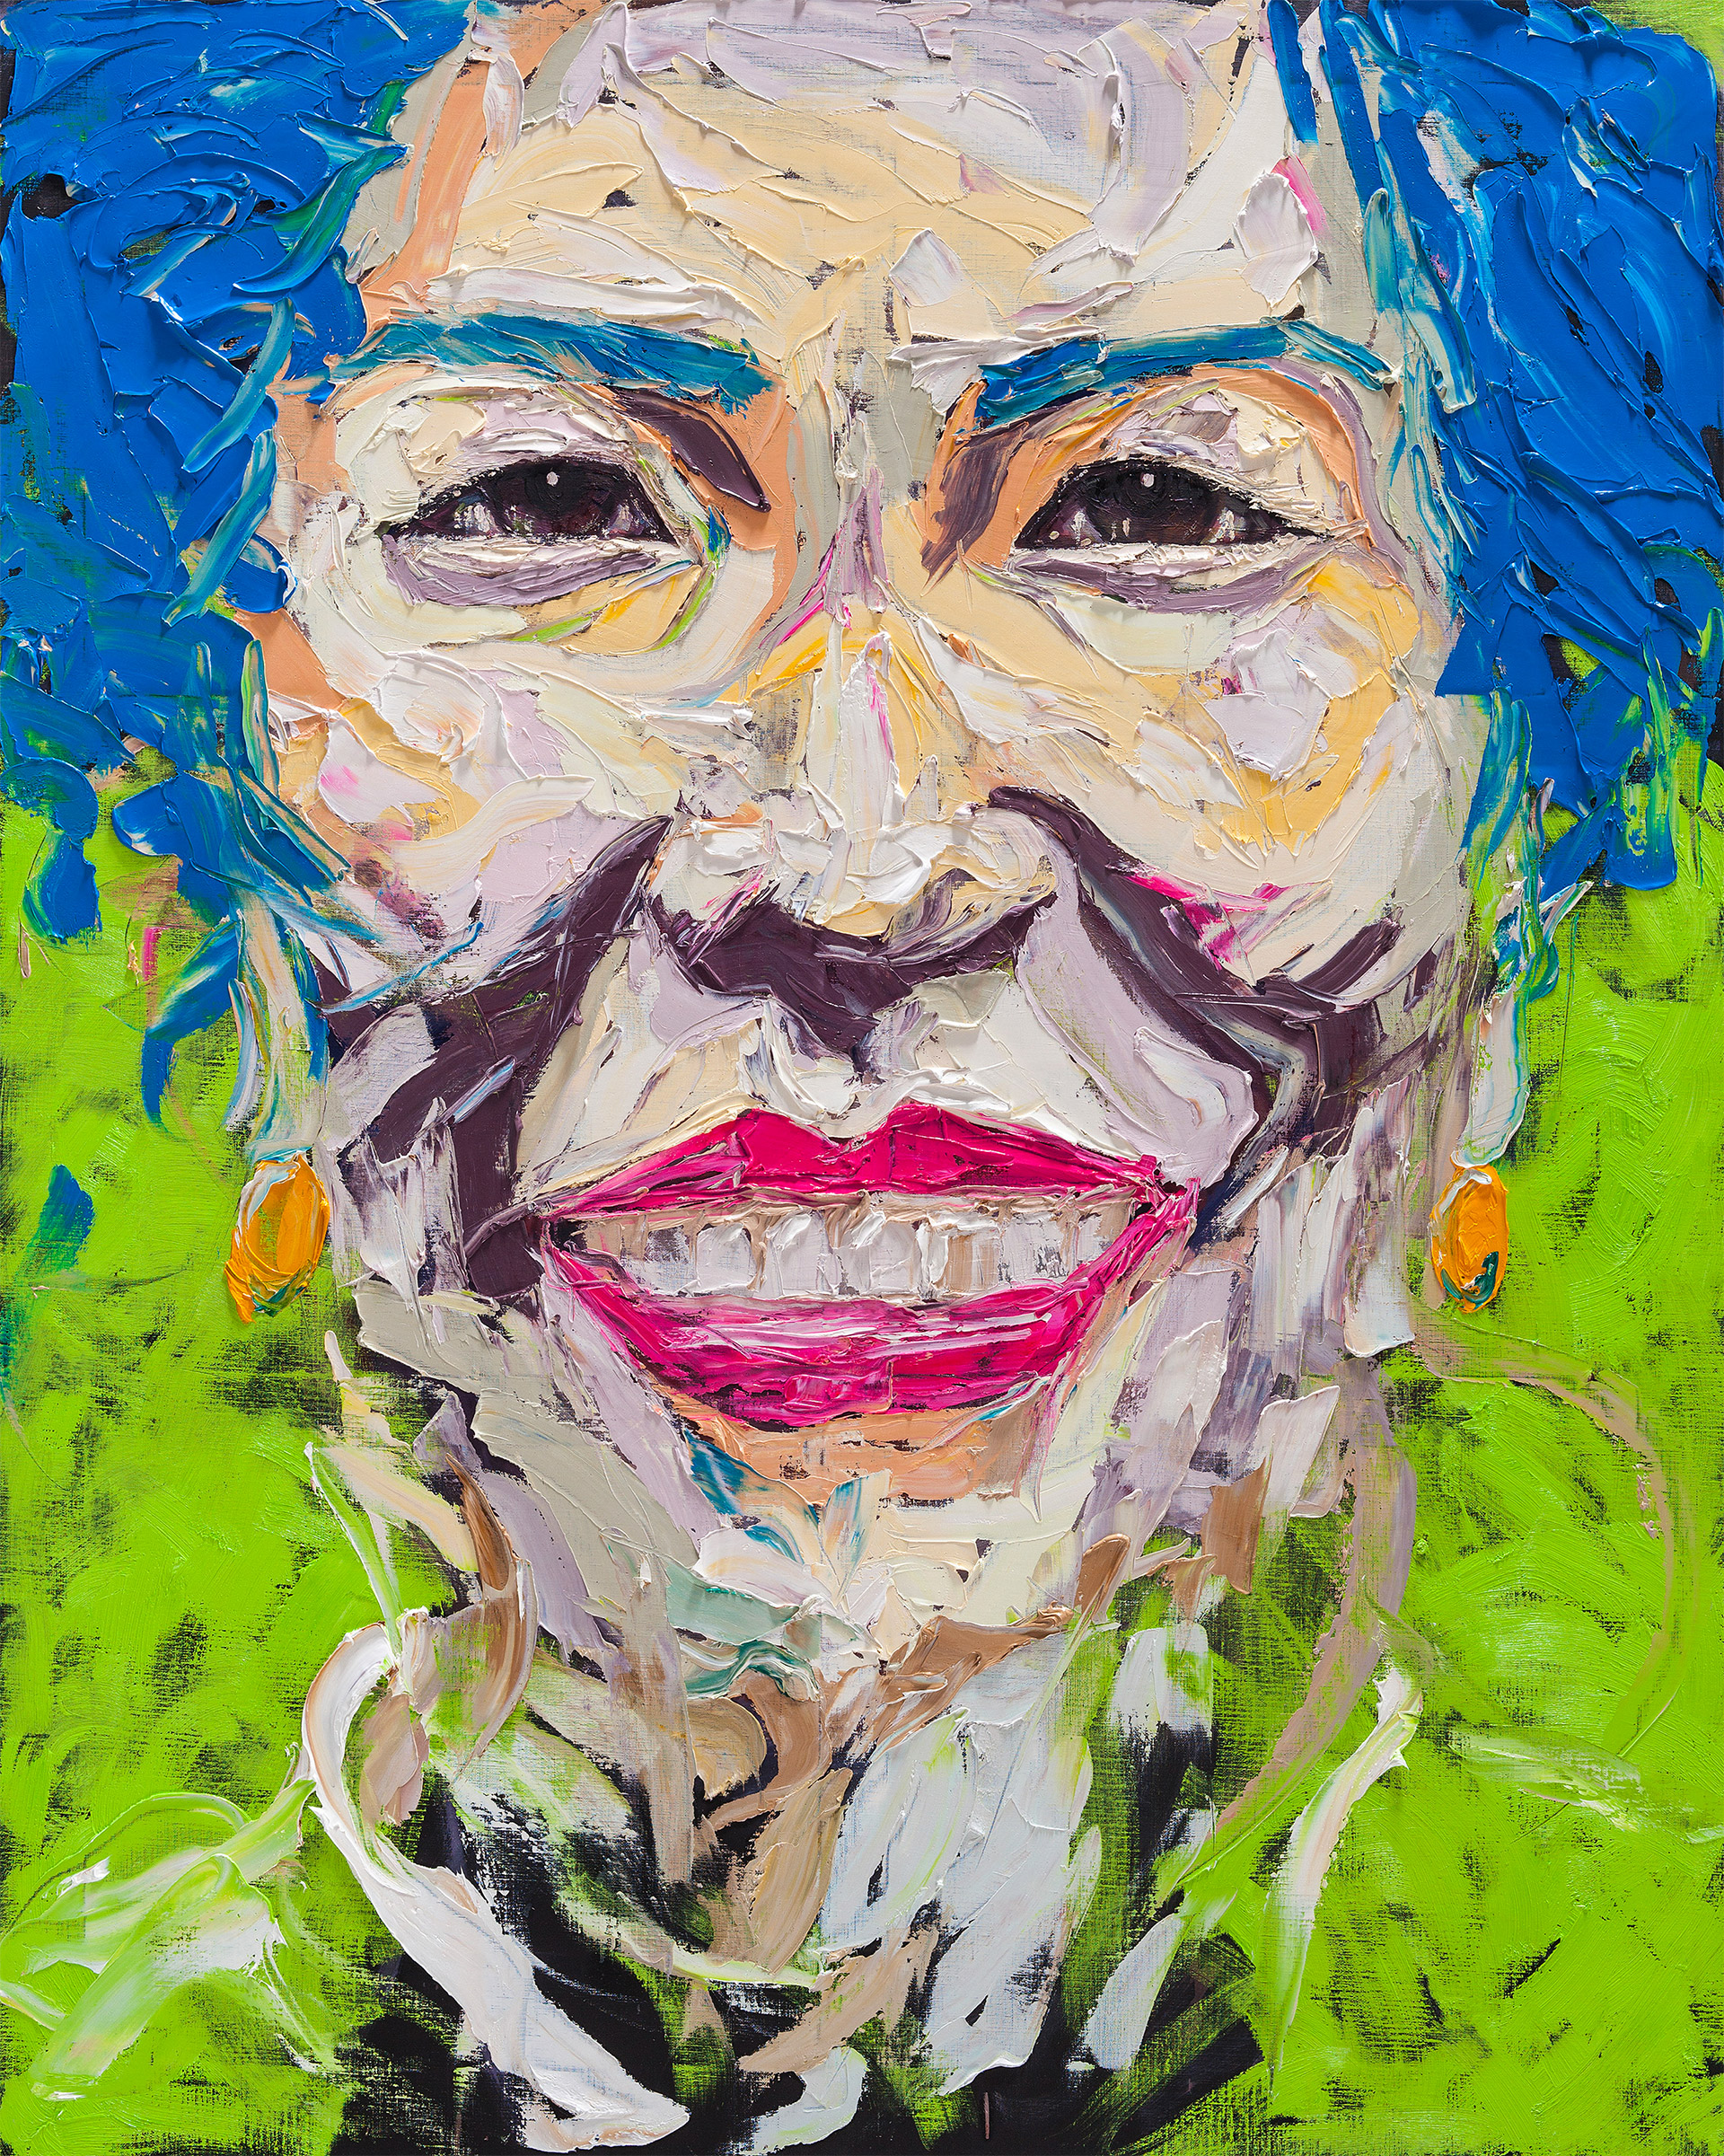 Expressive Portrait Paintings By Lim Nam Hun Daily Design Inspiration For Creatives Inspiration Grid